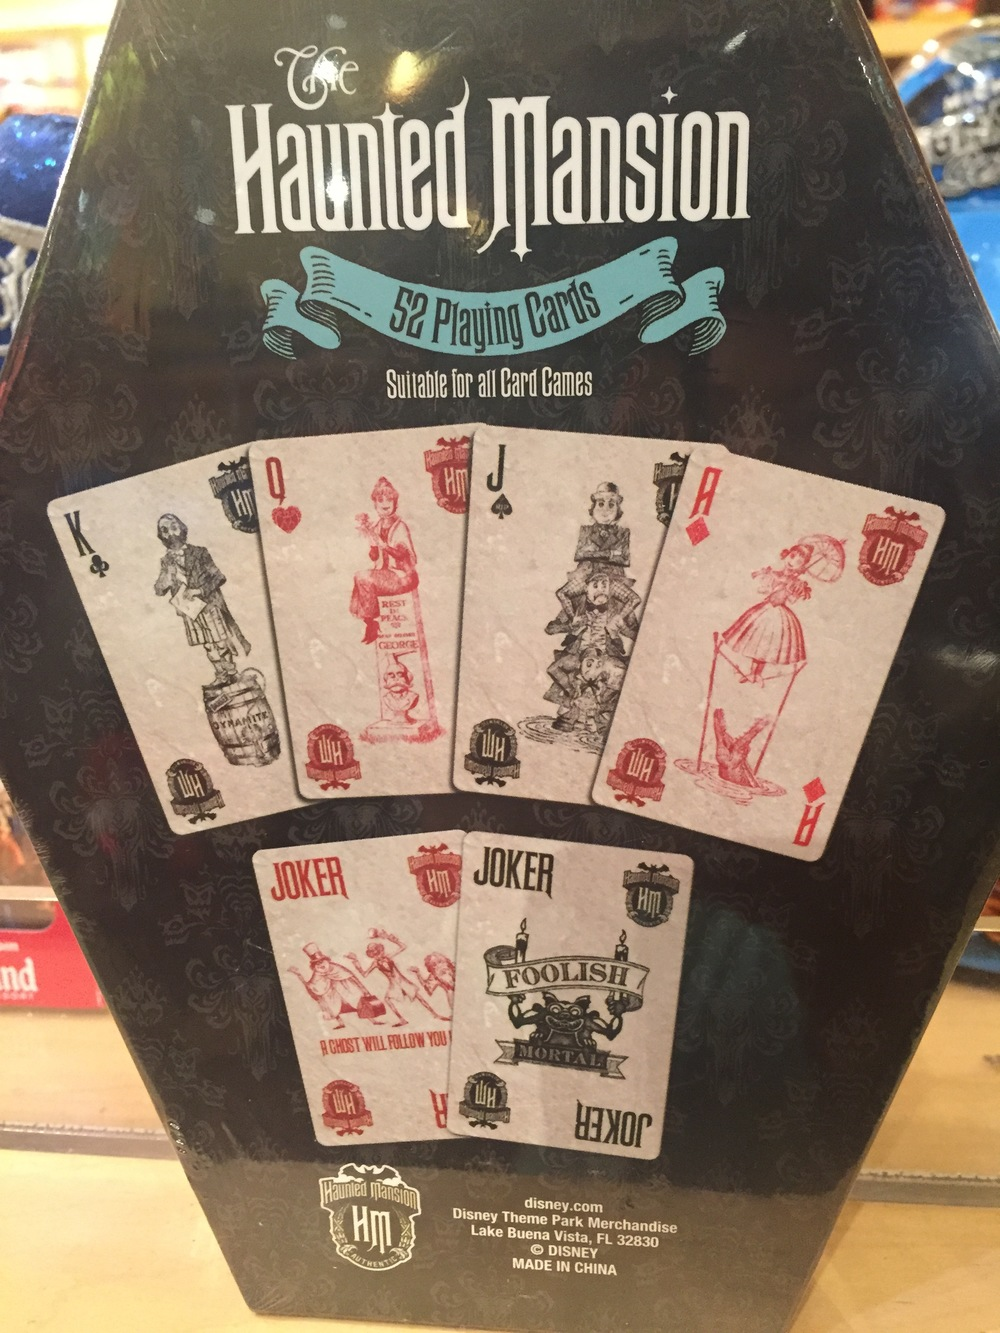 Back of package: The Haunted Mansion playing cards.